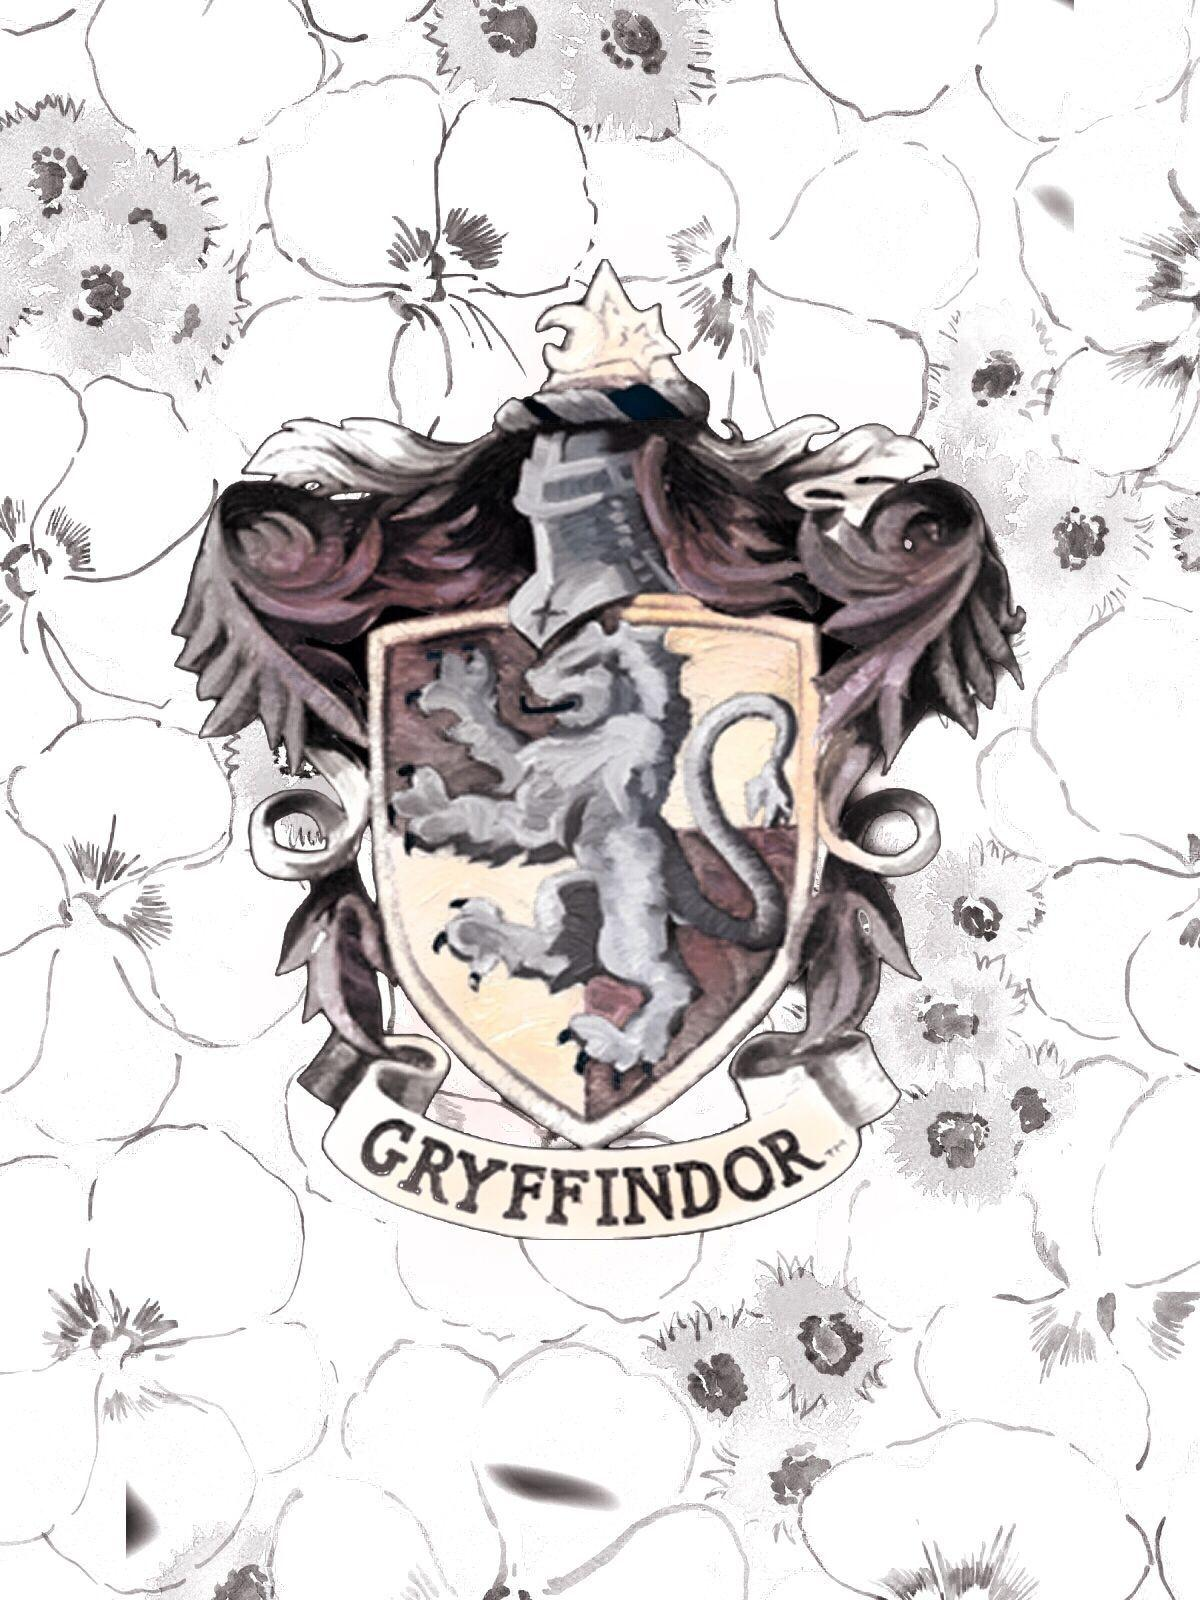 go go gryffindor wallpapers wallpaper cave gryffindor wallpapers wallpaper cave